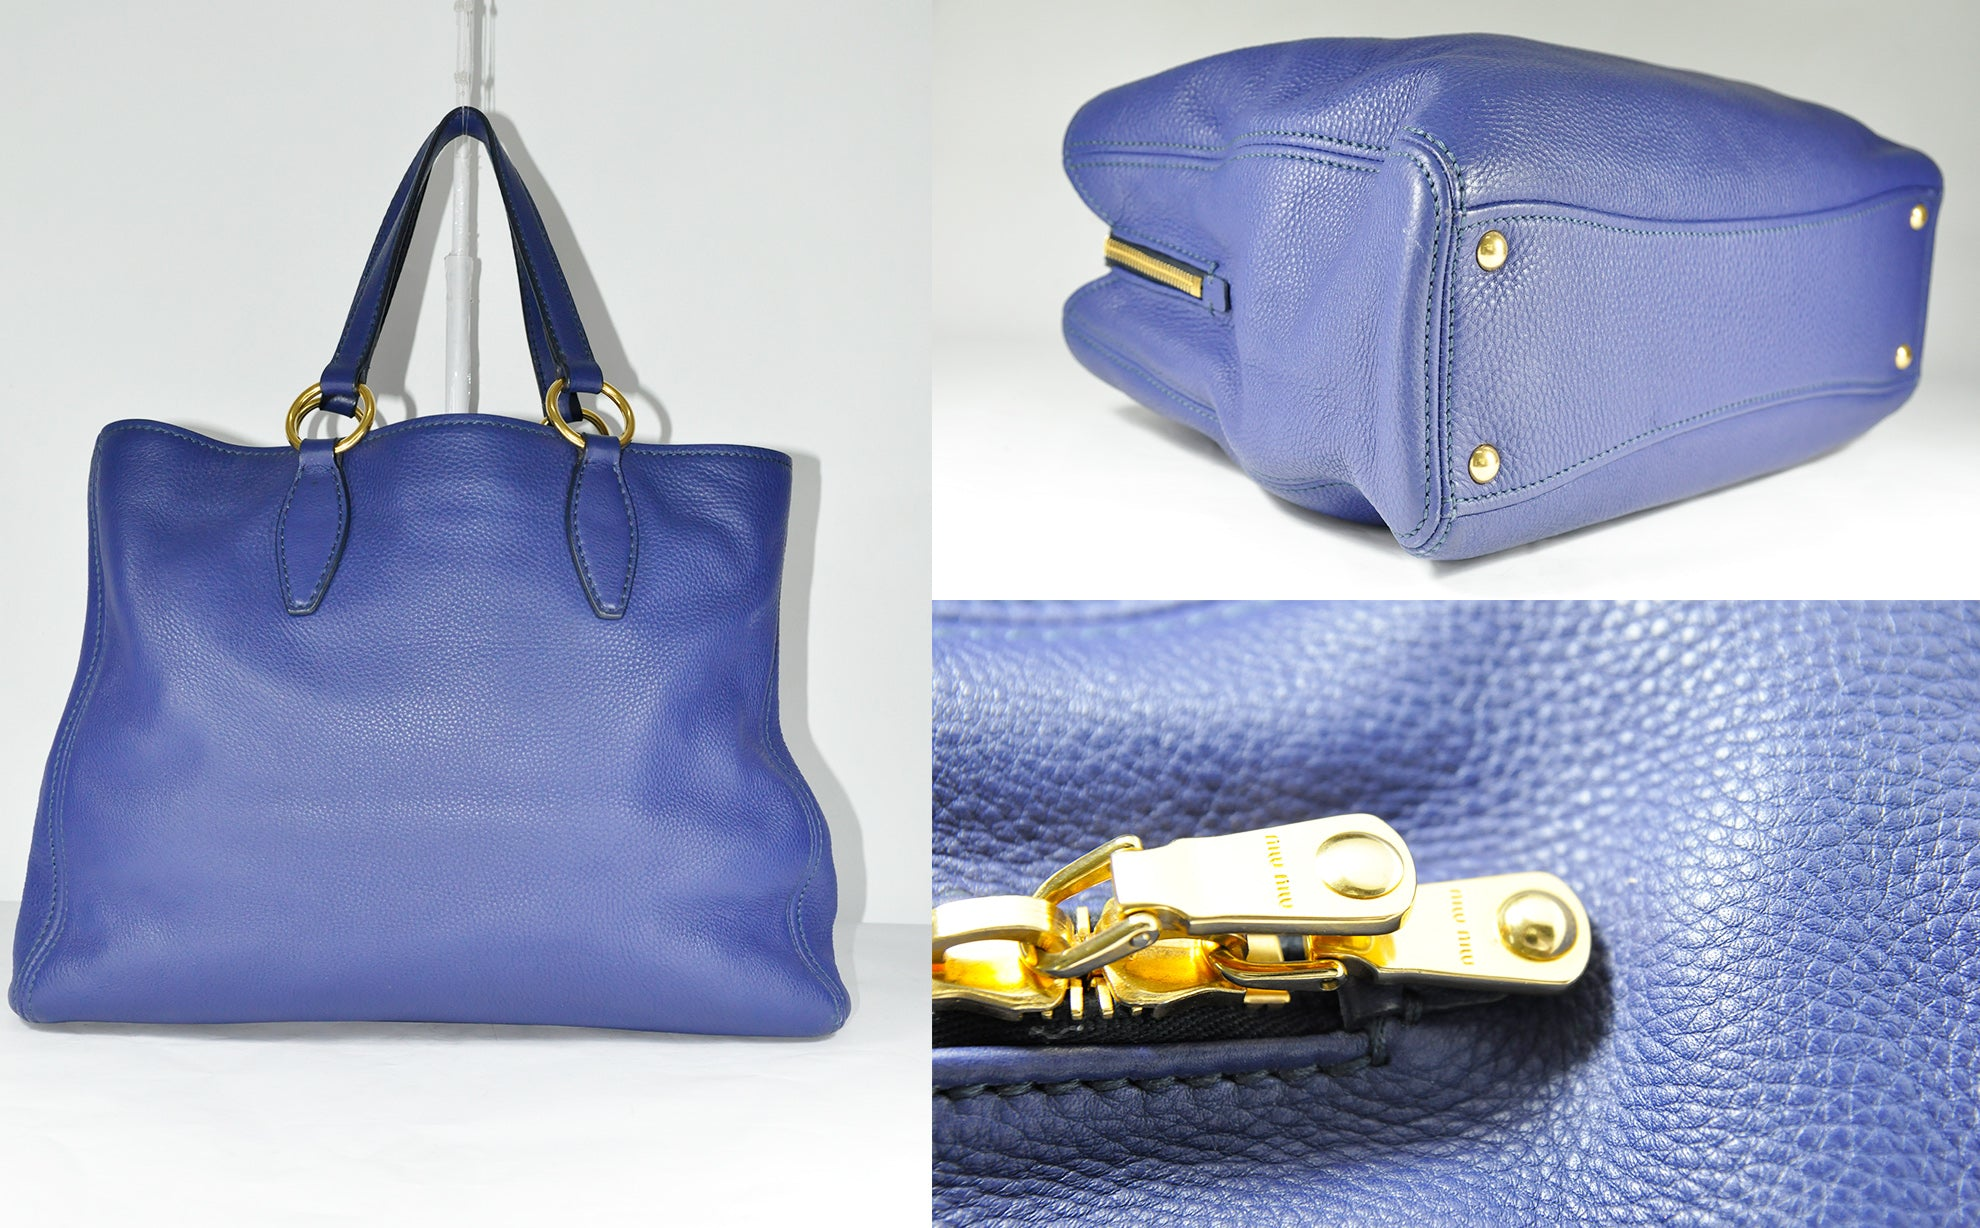 RN0761 Shopping Tote in Blue